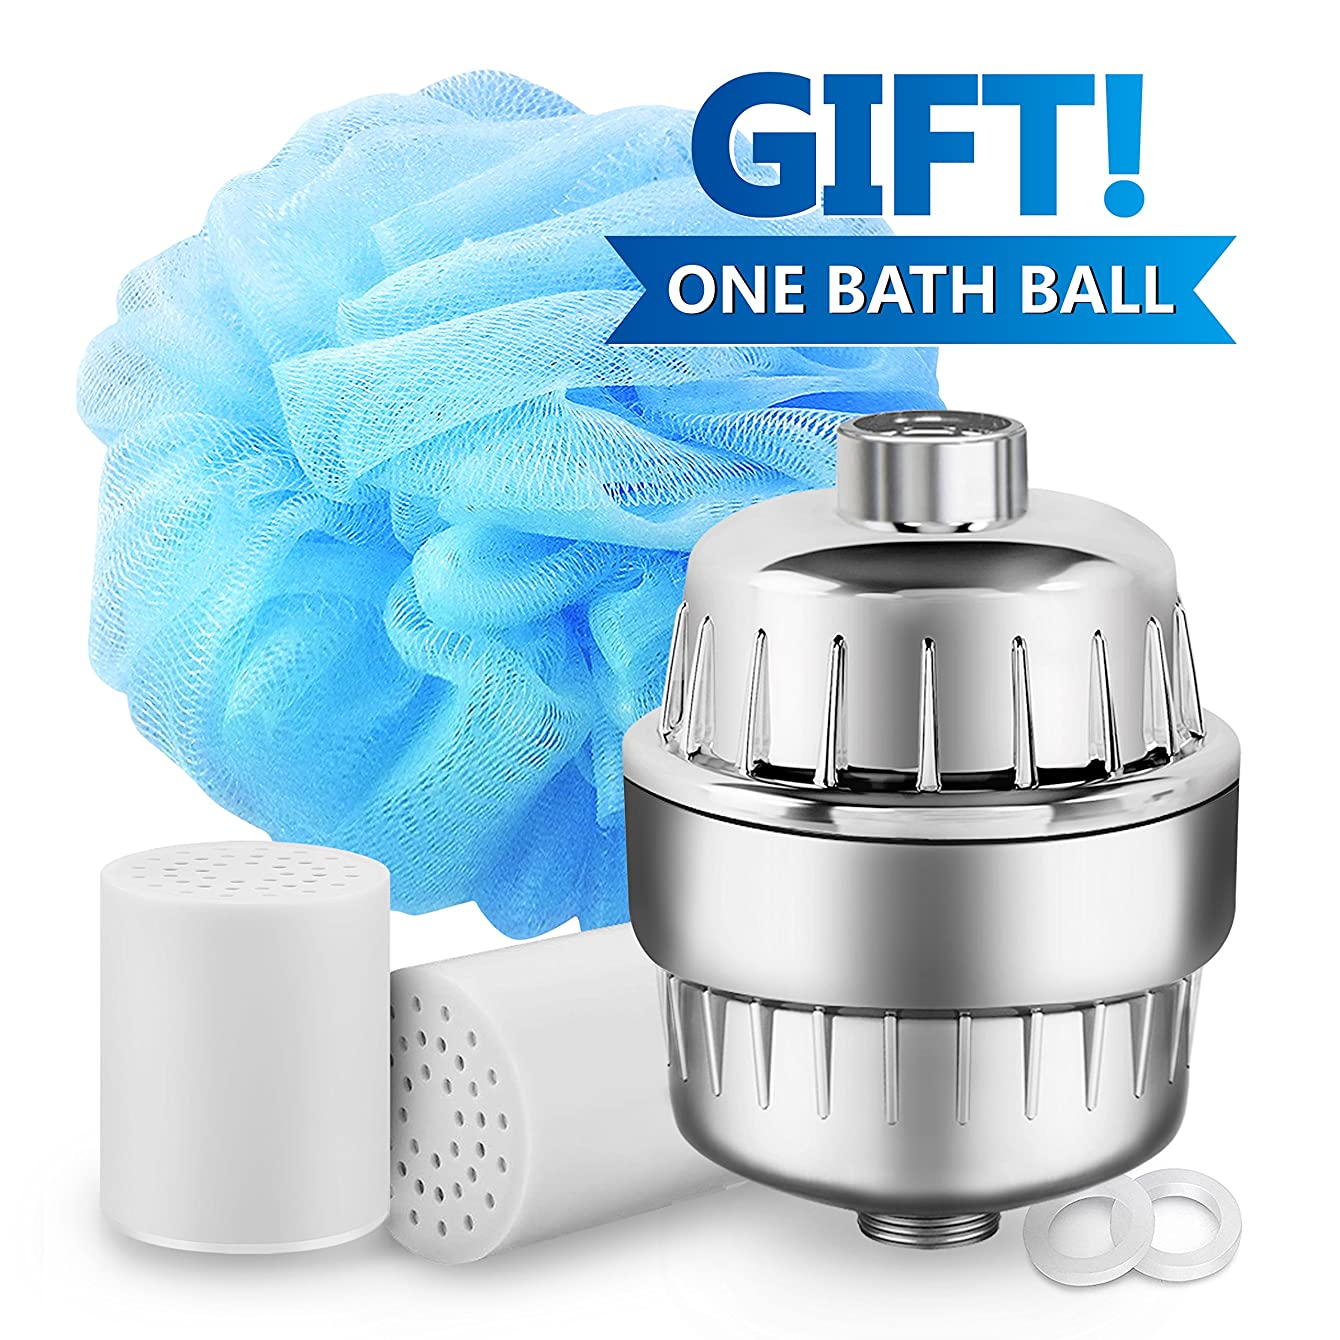 Waterdrop Replacement Shower Water Filter- High Output & Multi-Stage- 2 Cartridges and 1 Bath Ball Included, Compatible with Any Shower Head and Handheld Shower